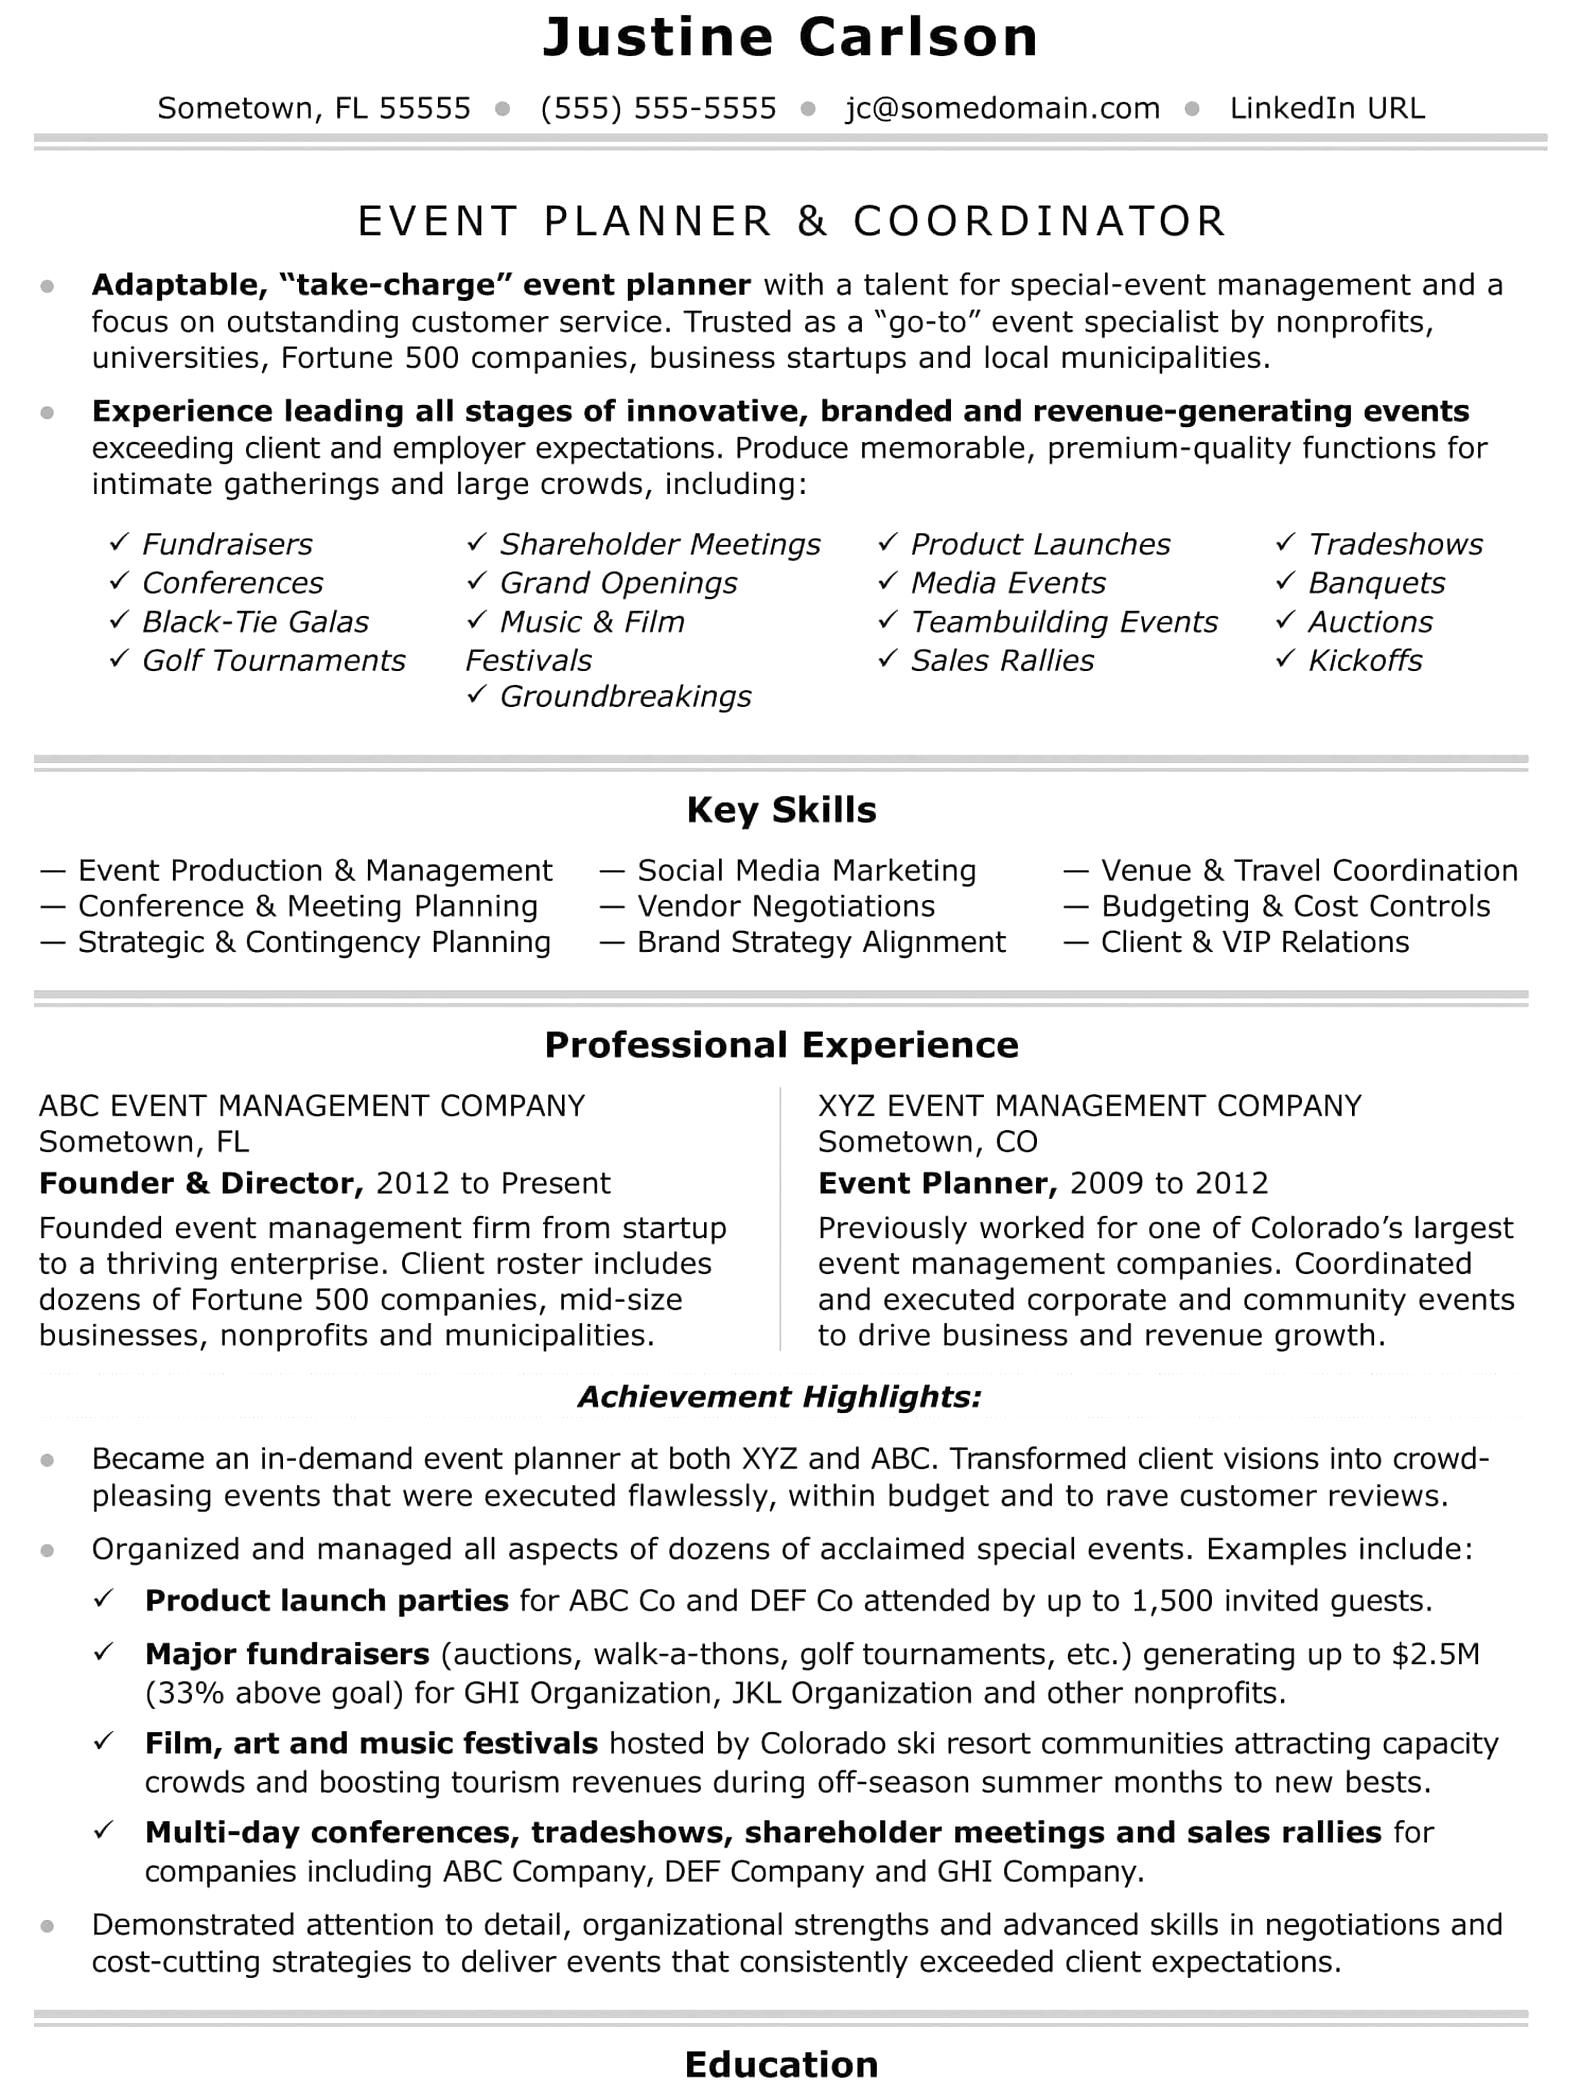 Pin on resume tips and tricks